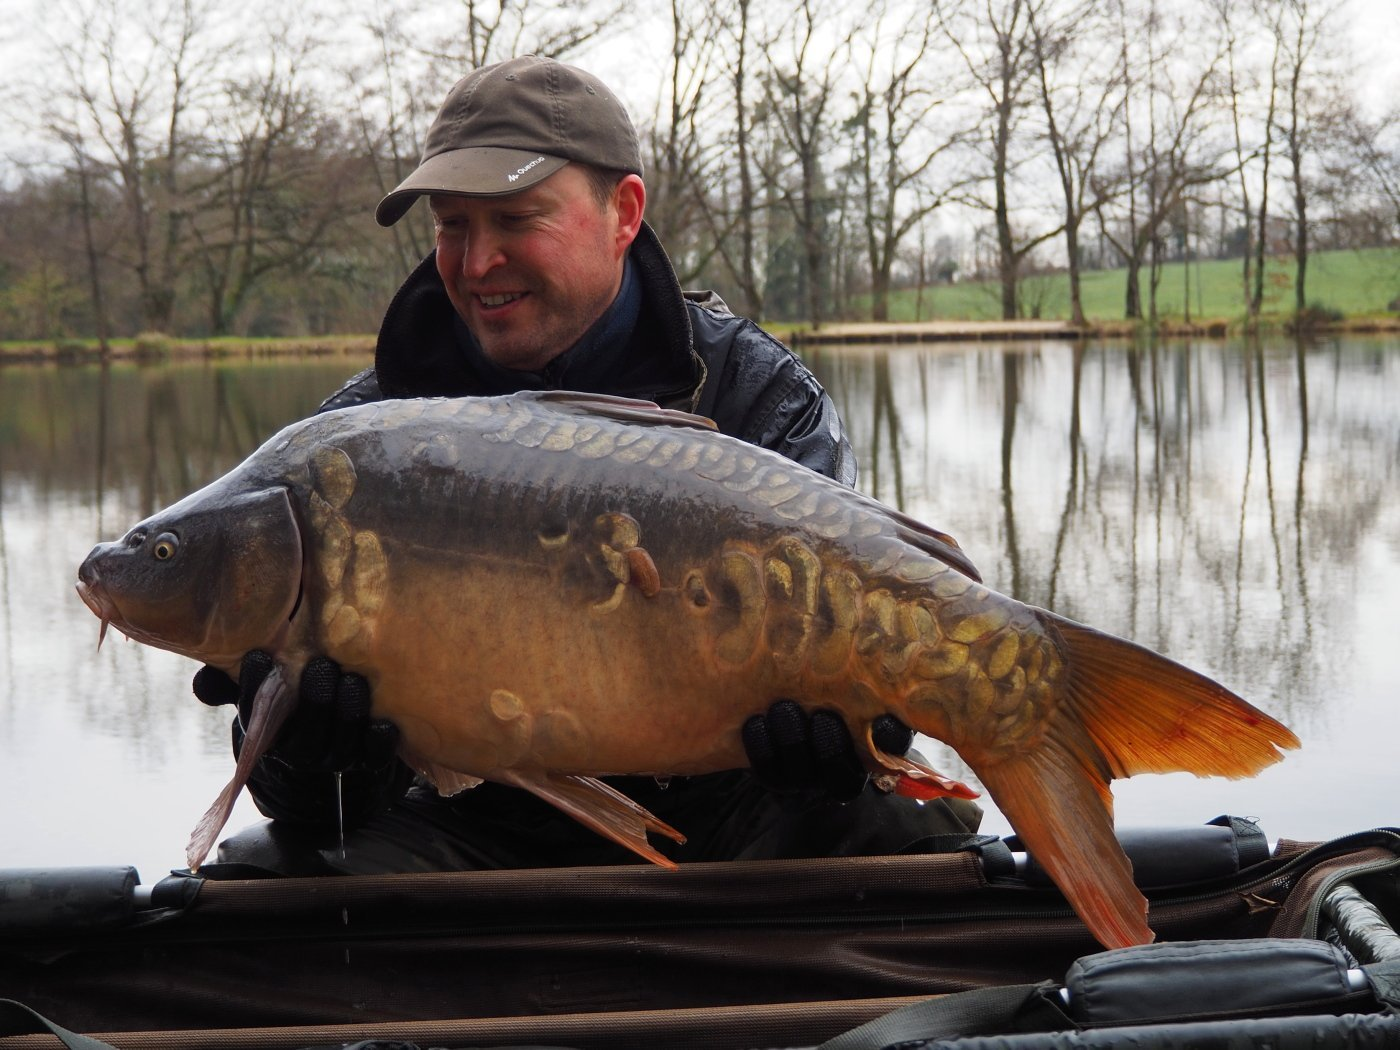 Nugget a mirror carp of 29lbs 4oz